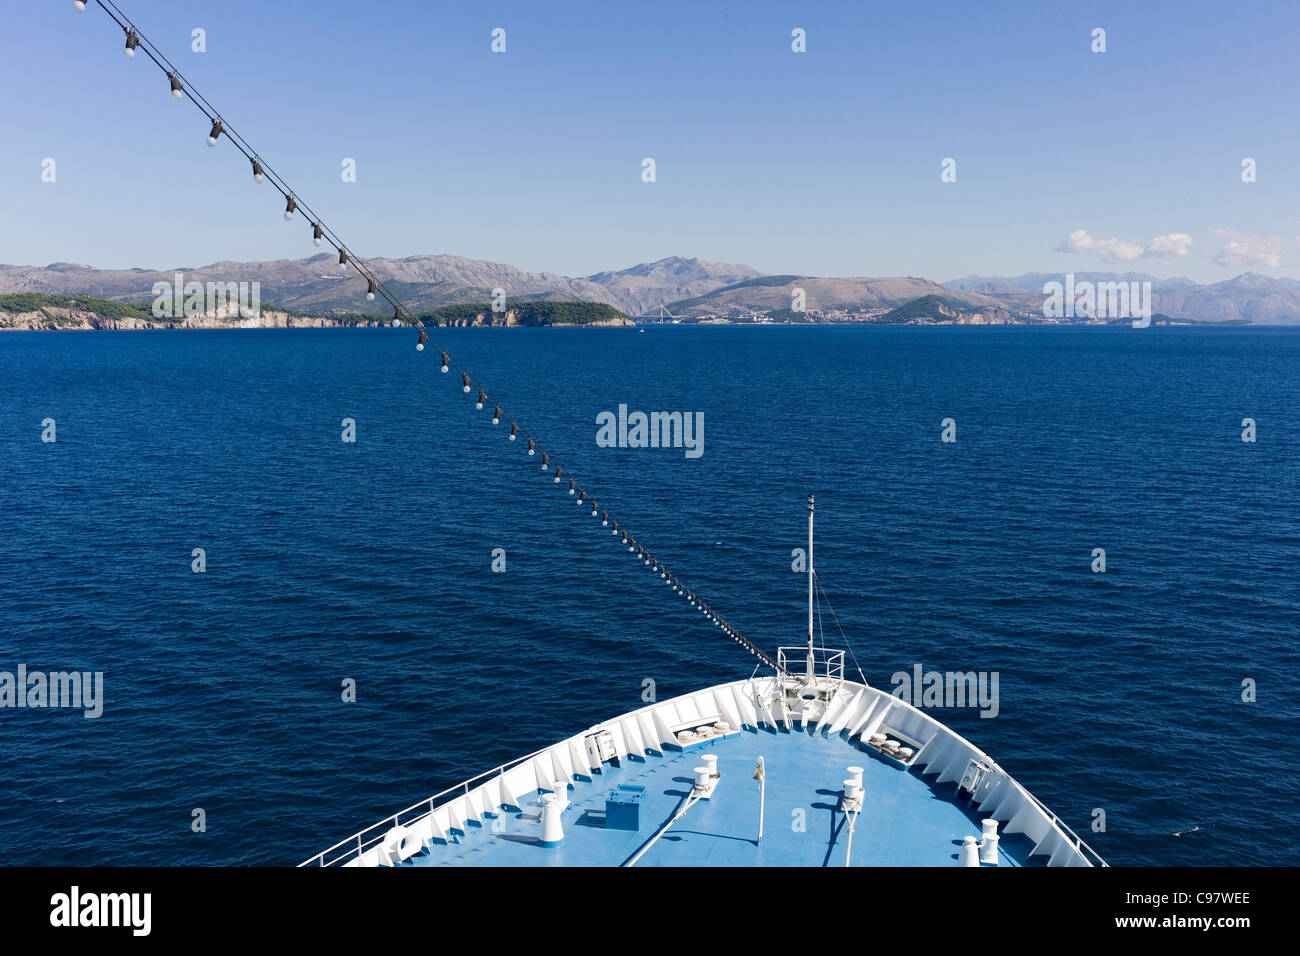 Bow of cruiseship MS Delphin approaching the coastline, Dubrovnik, Croatia, Europe - Stock Image